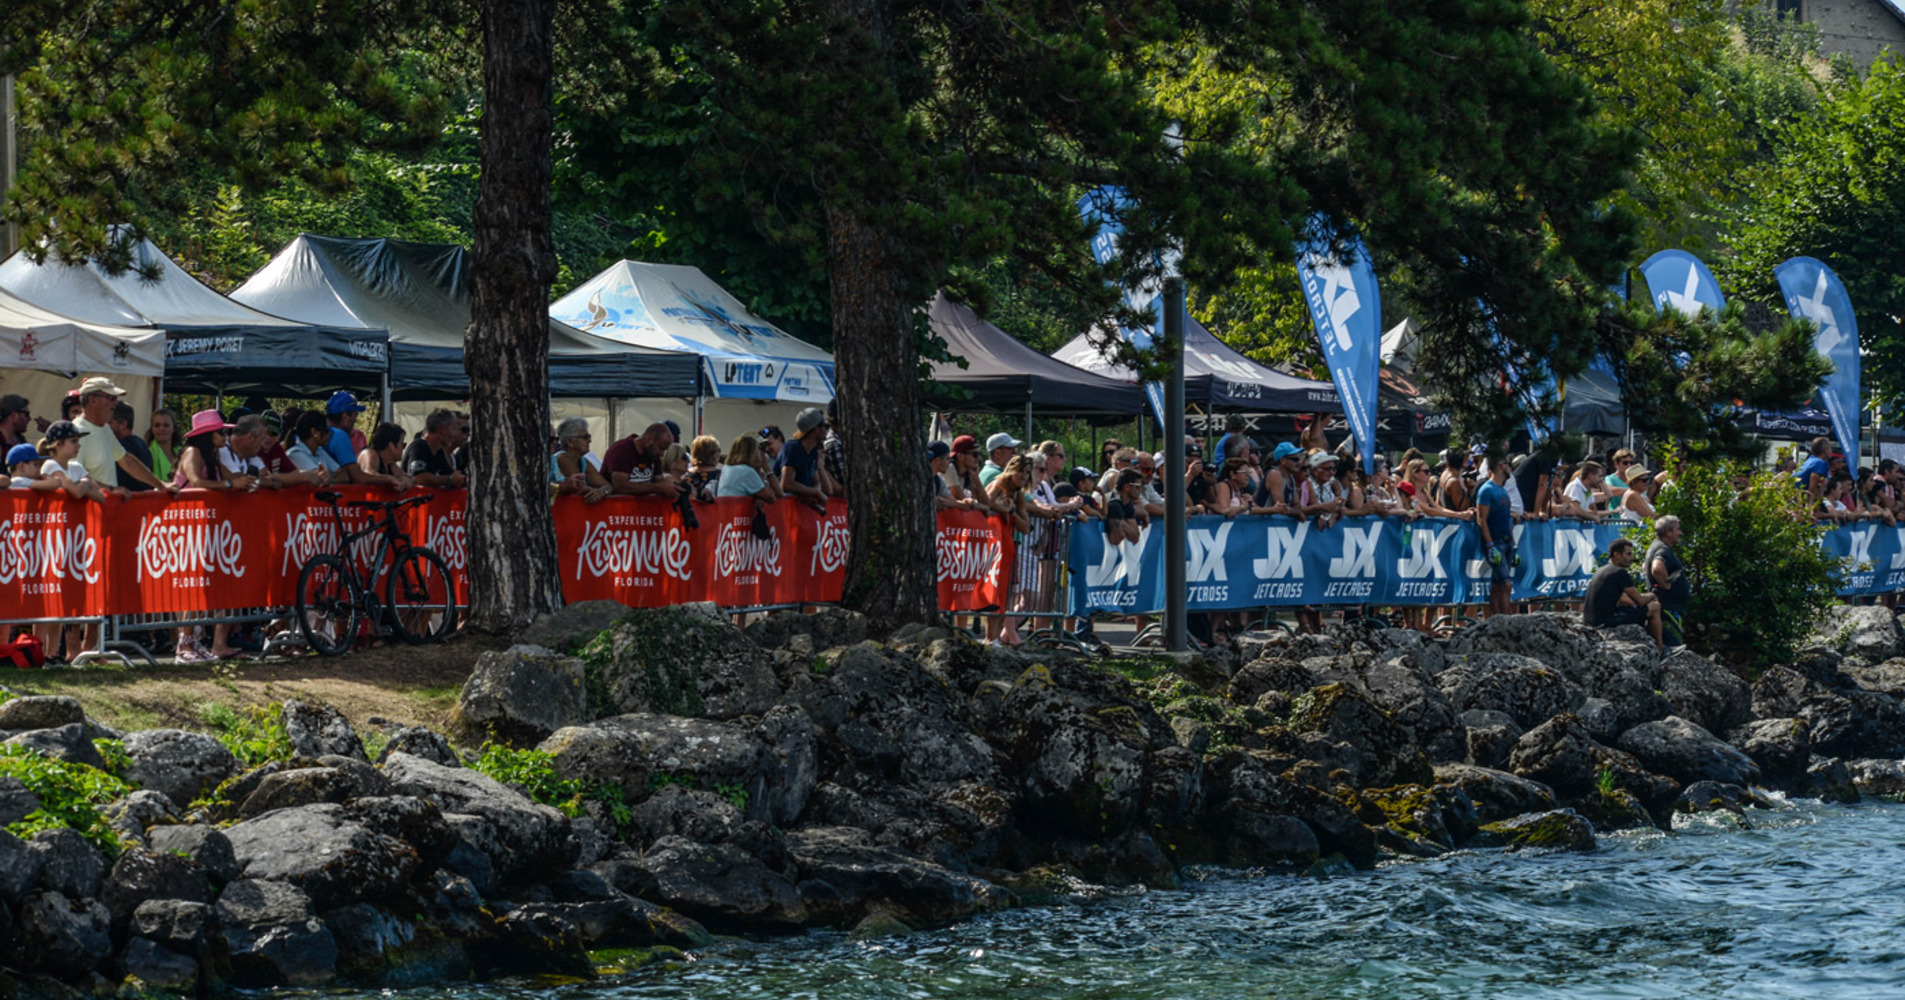 Huge success for this round of the P1 Jetcross Tour here in beautiful Le Bouveret, Canton of Valais, Switzerland